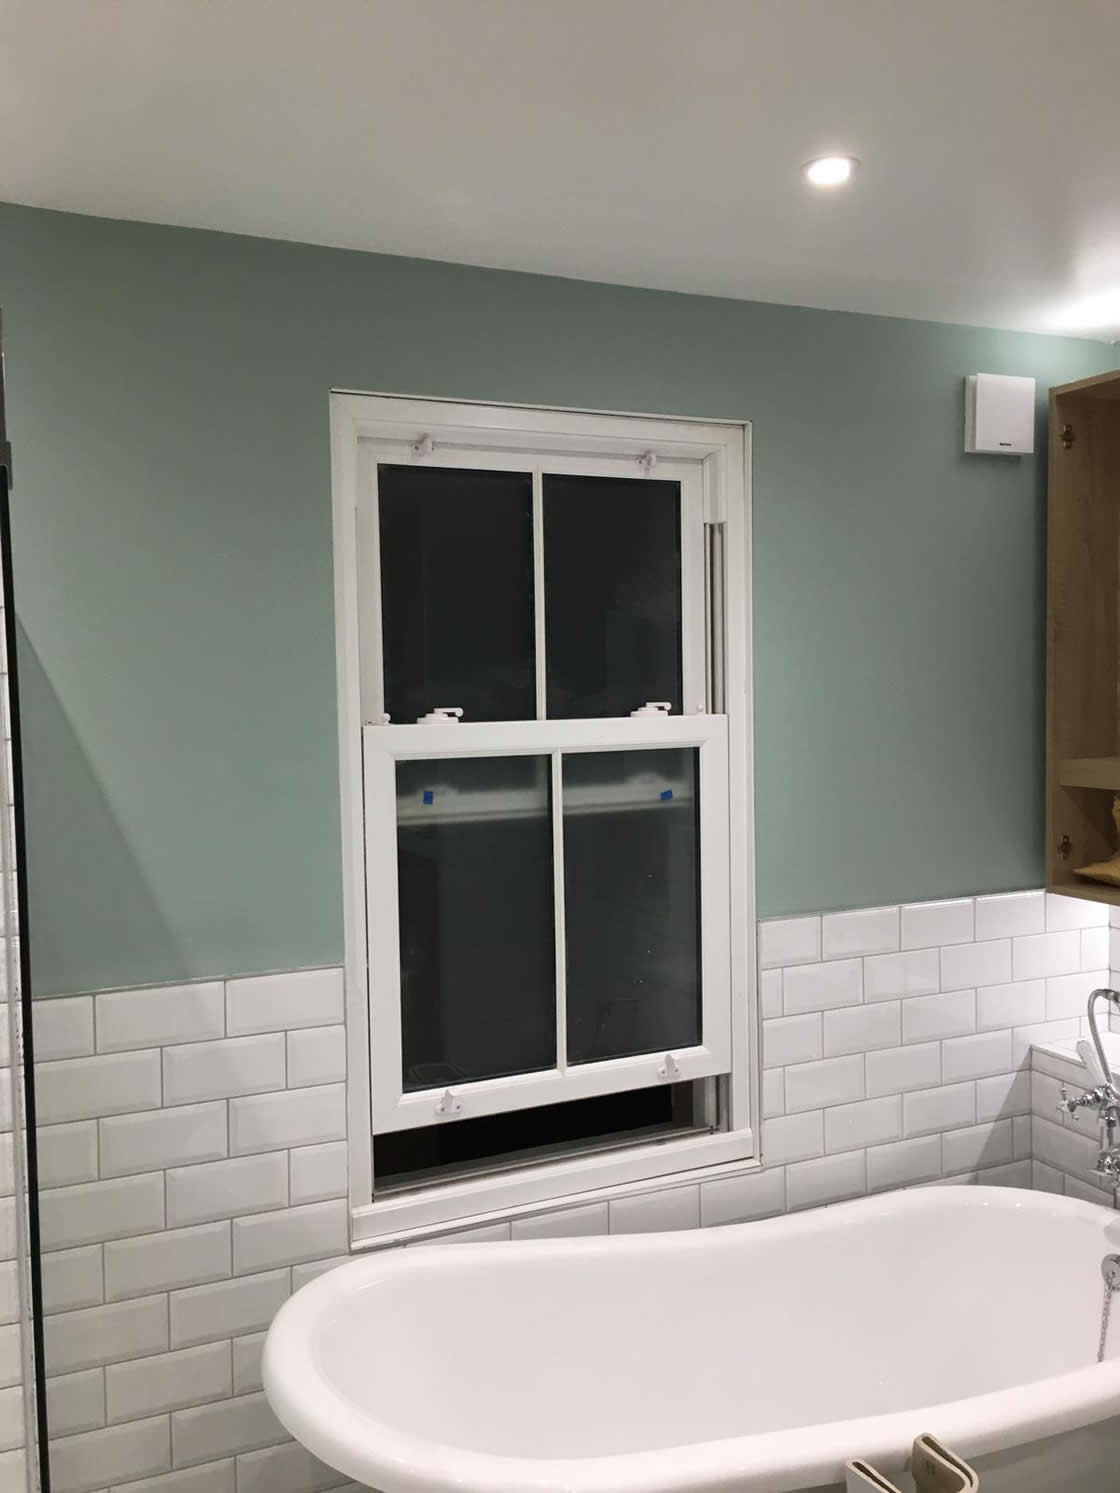 Victorian Style Bathroom Completion Pictures (8)